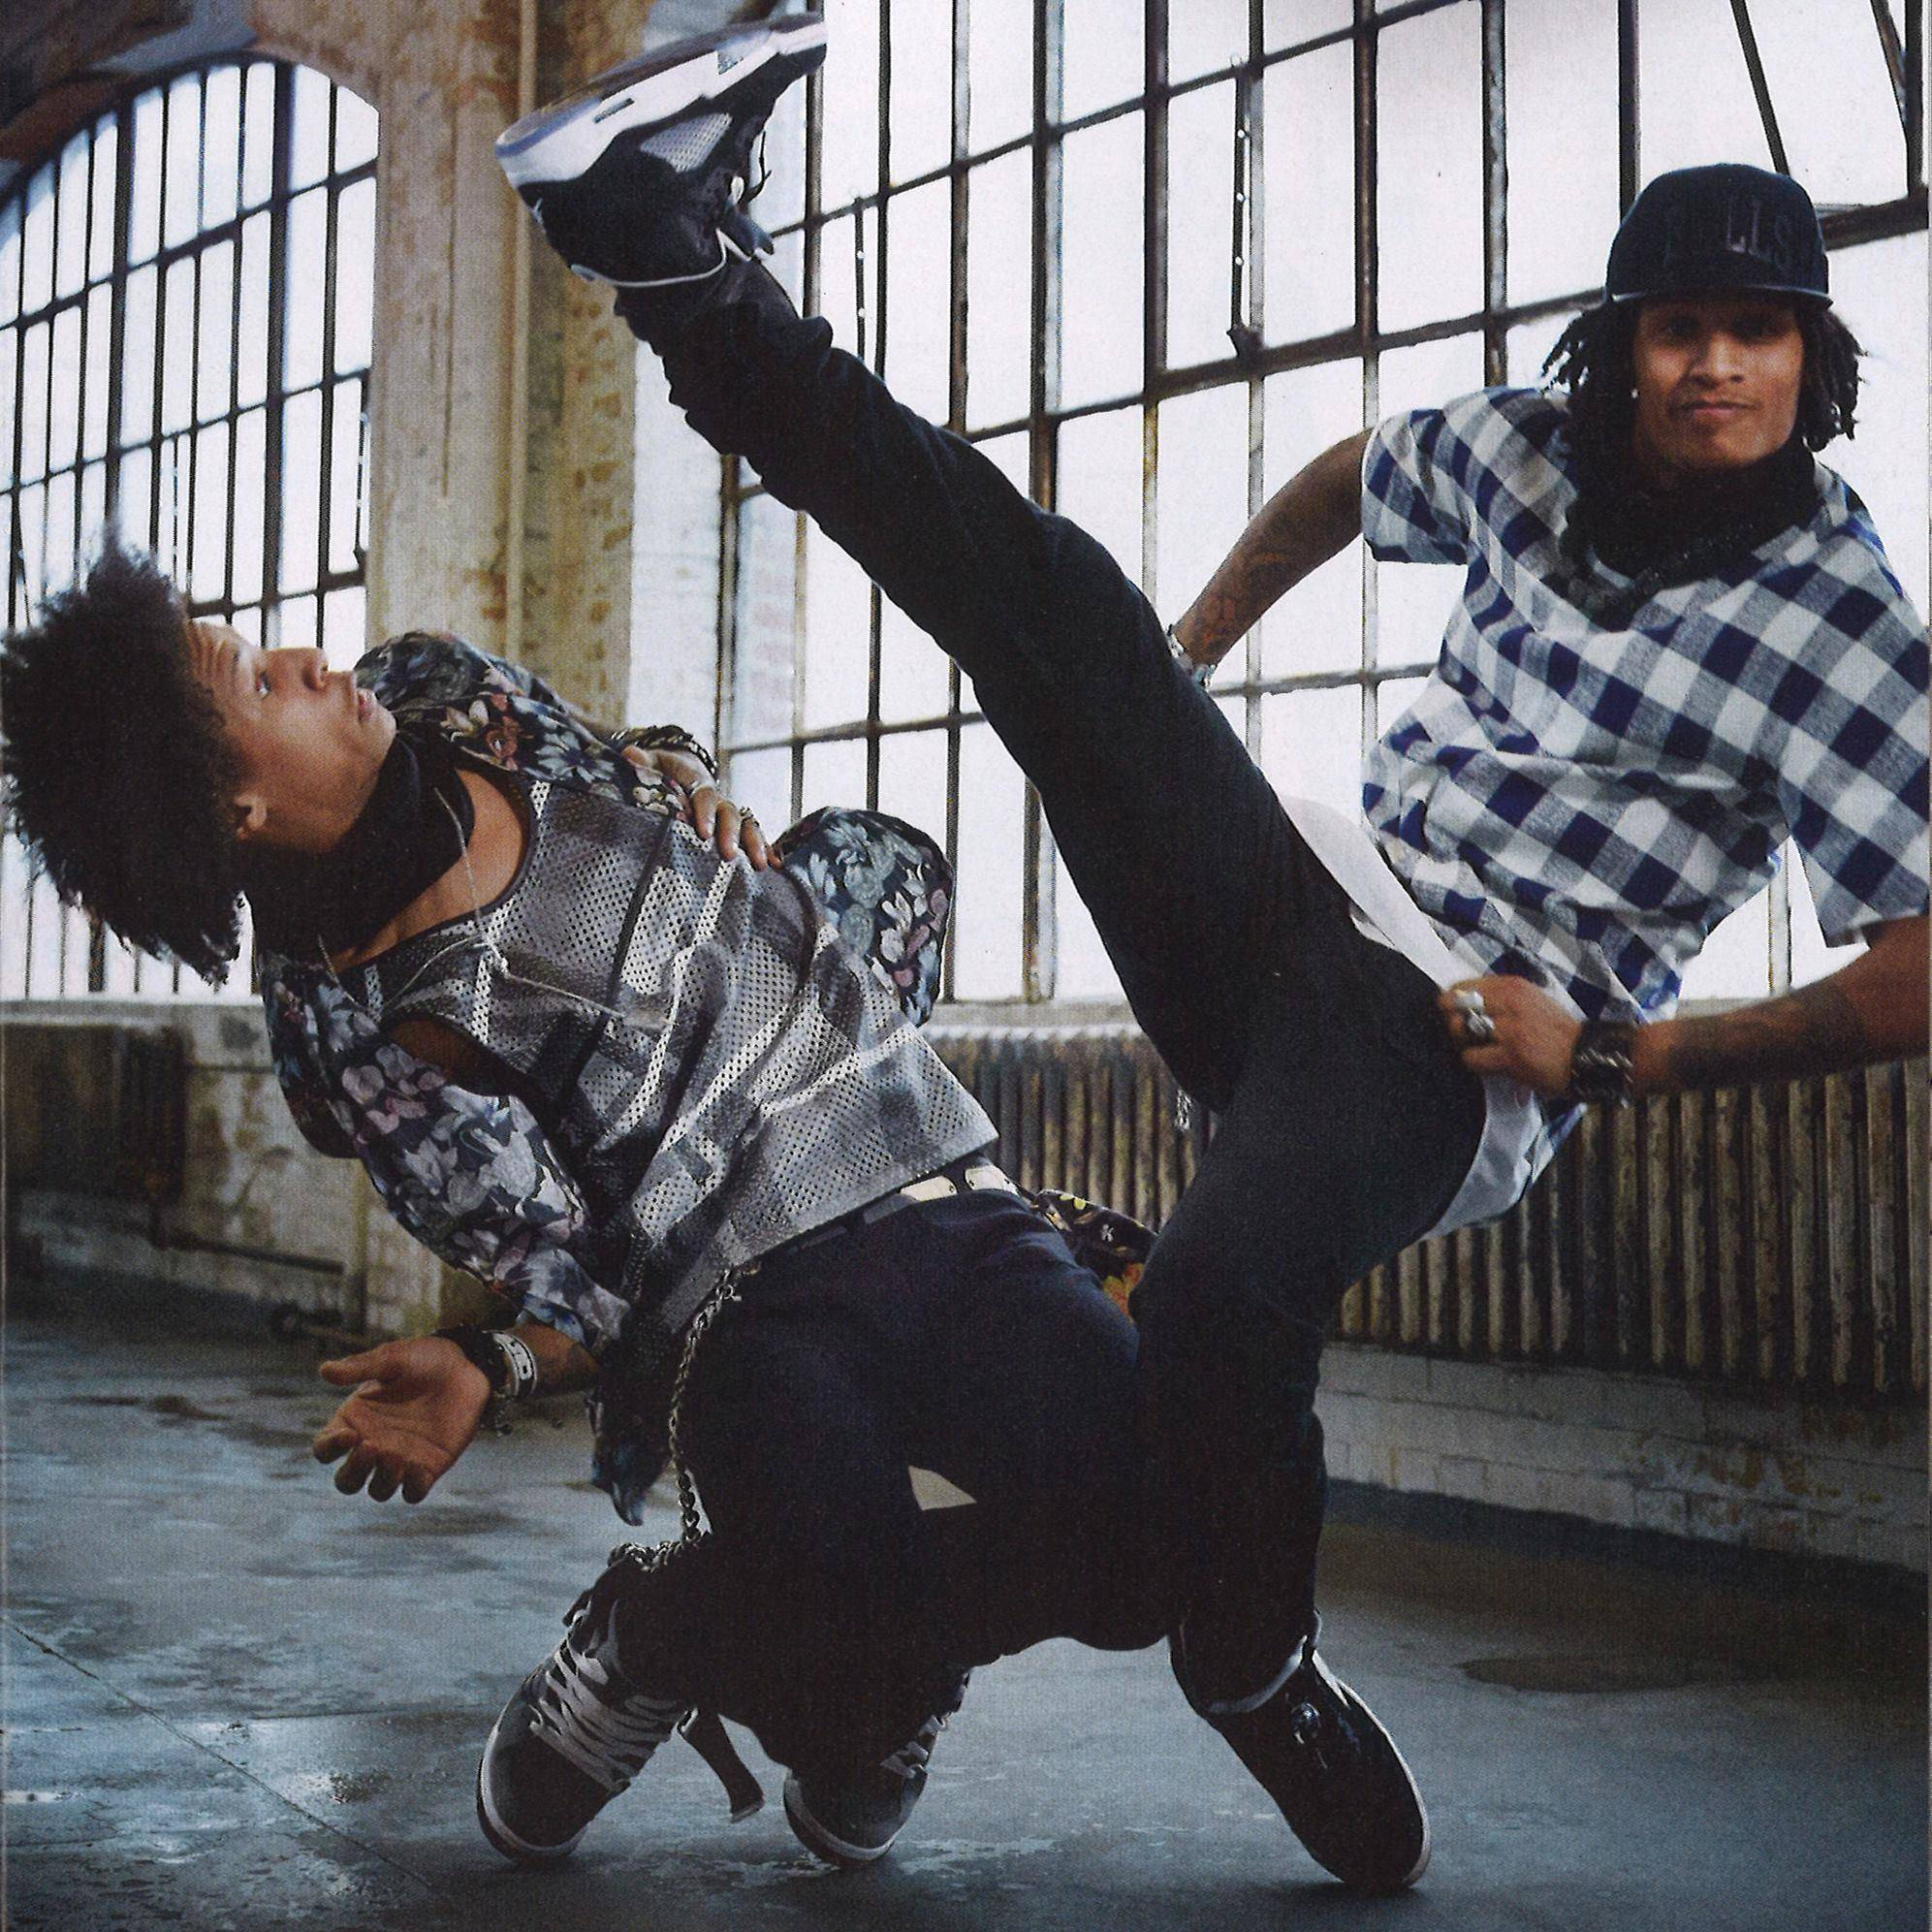 les Twins in action - Les Twins booking and artist information Pressefoto